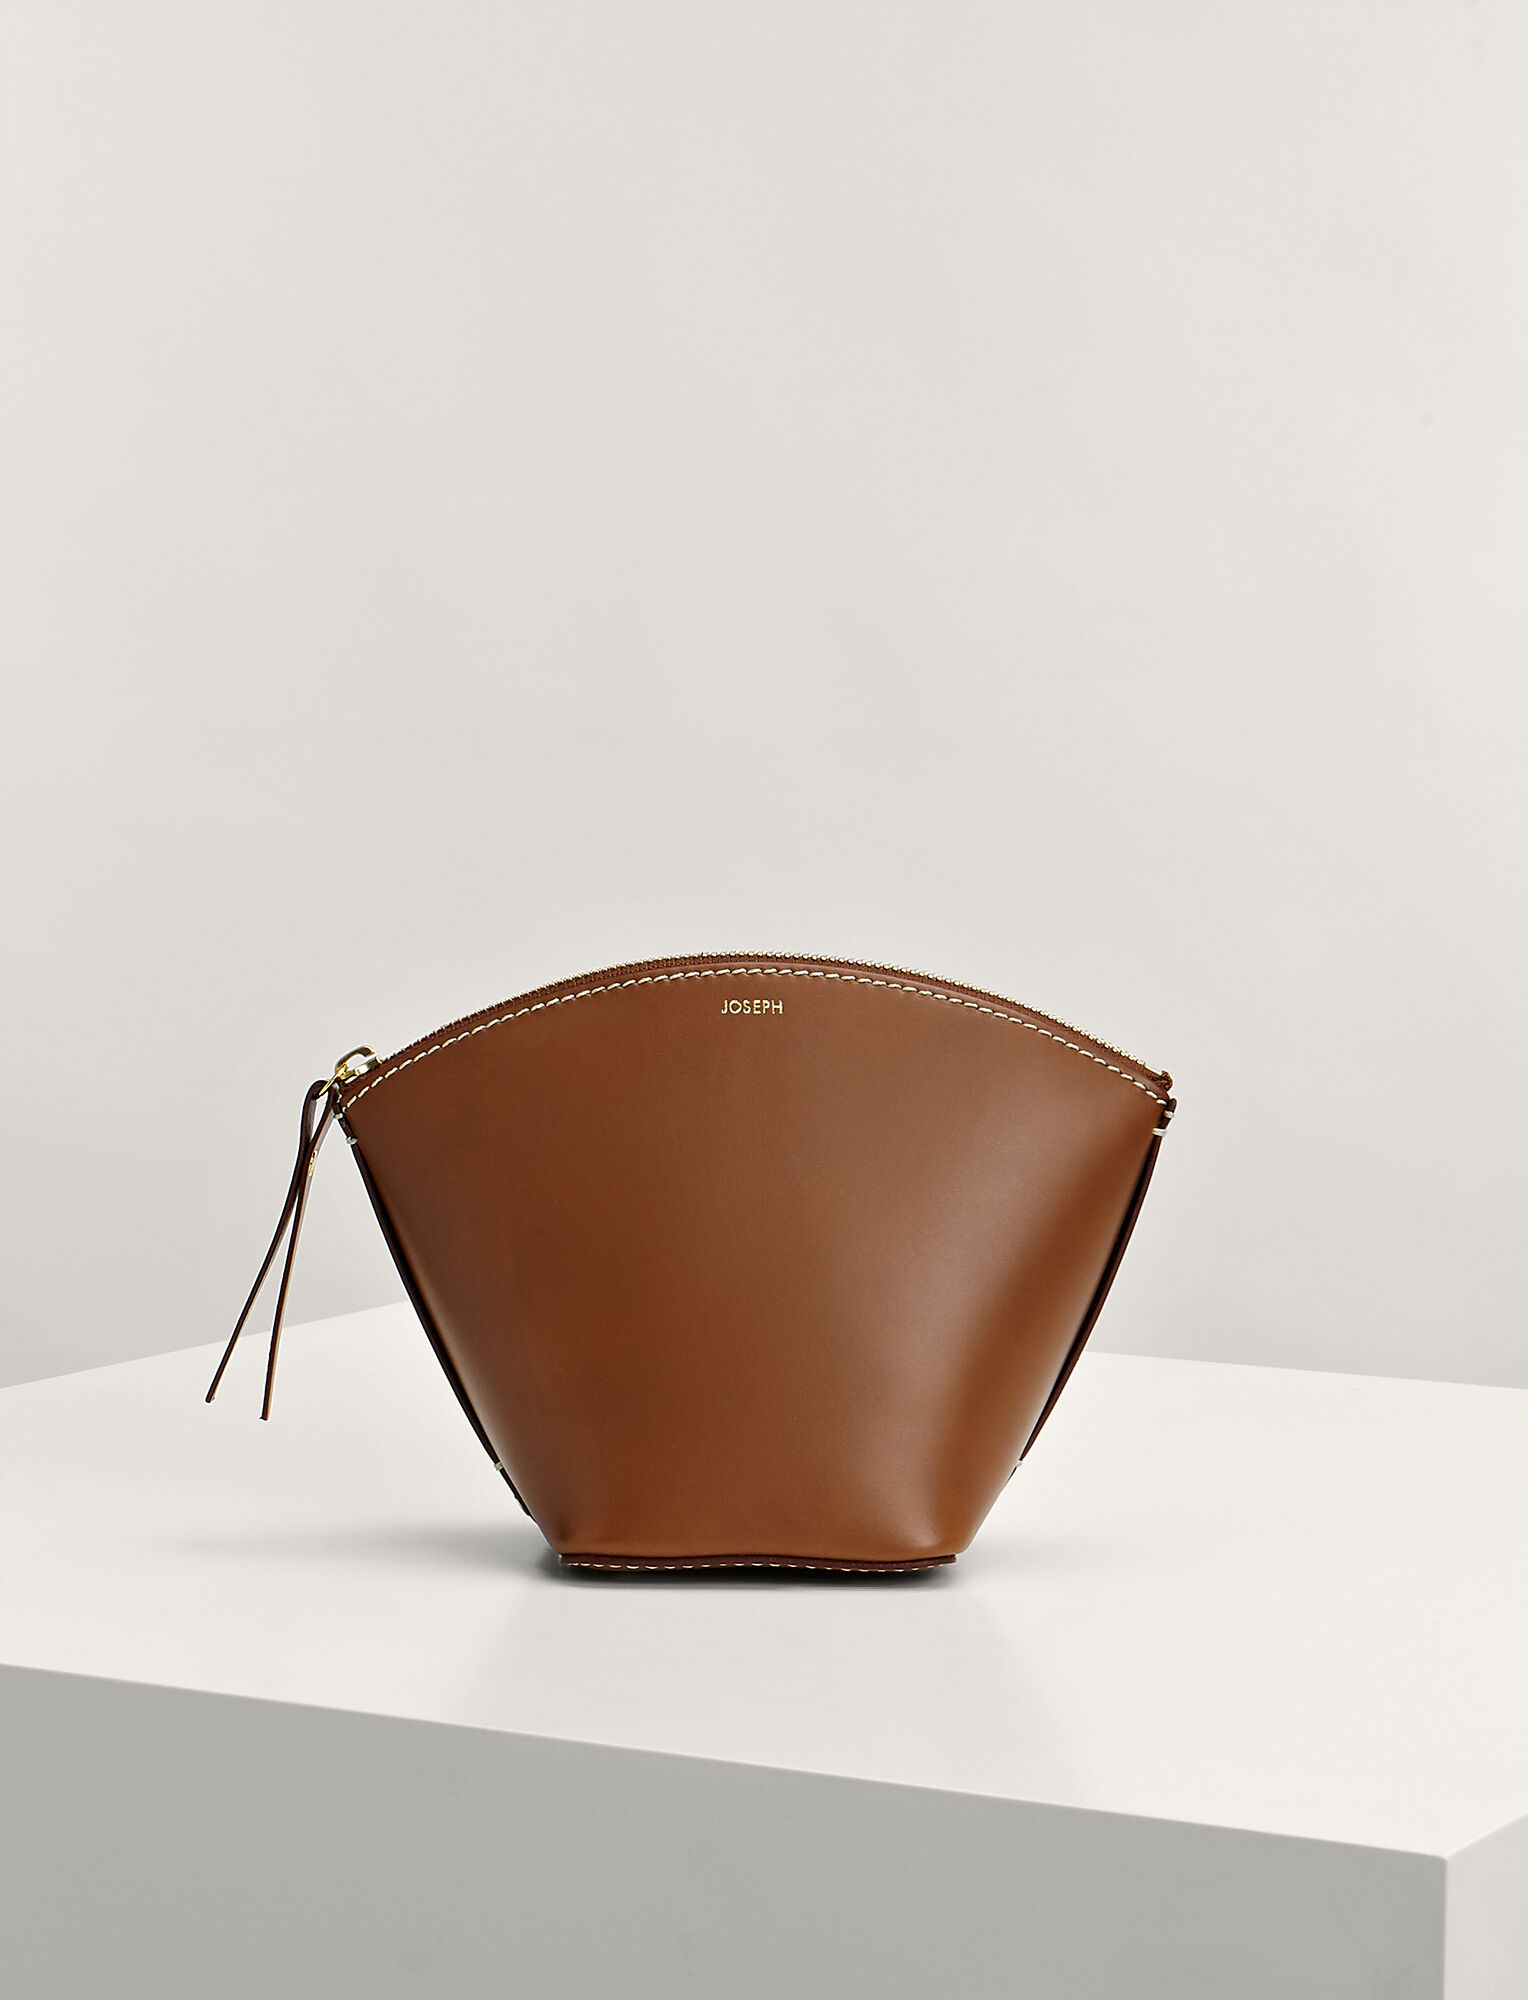 Joseph, Calf Leather Cosmetic Pouch, in SADDLE